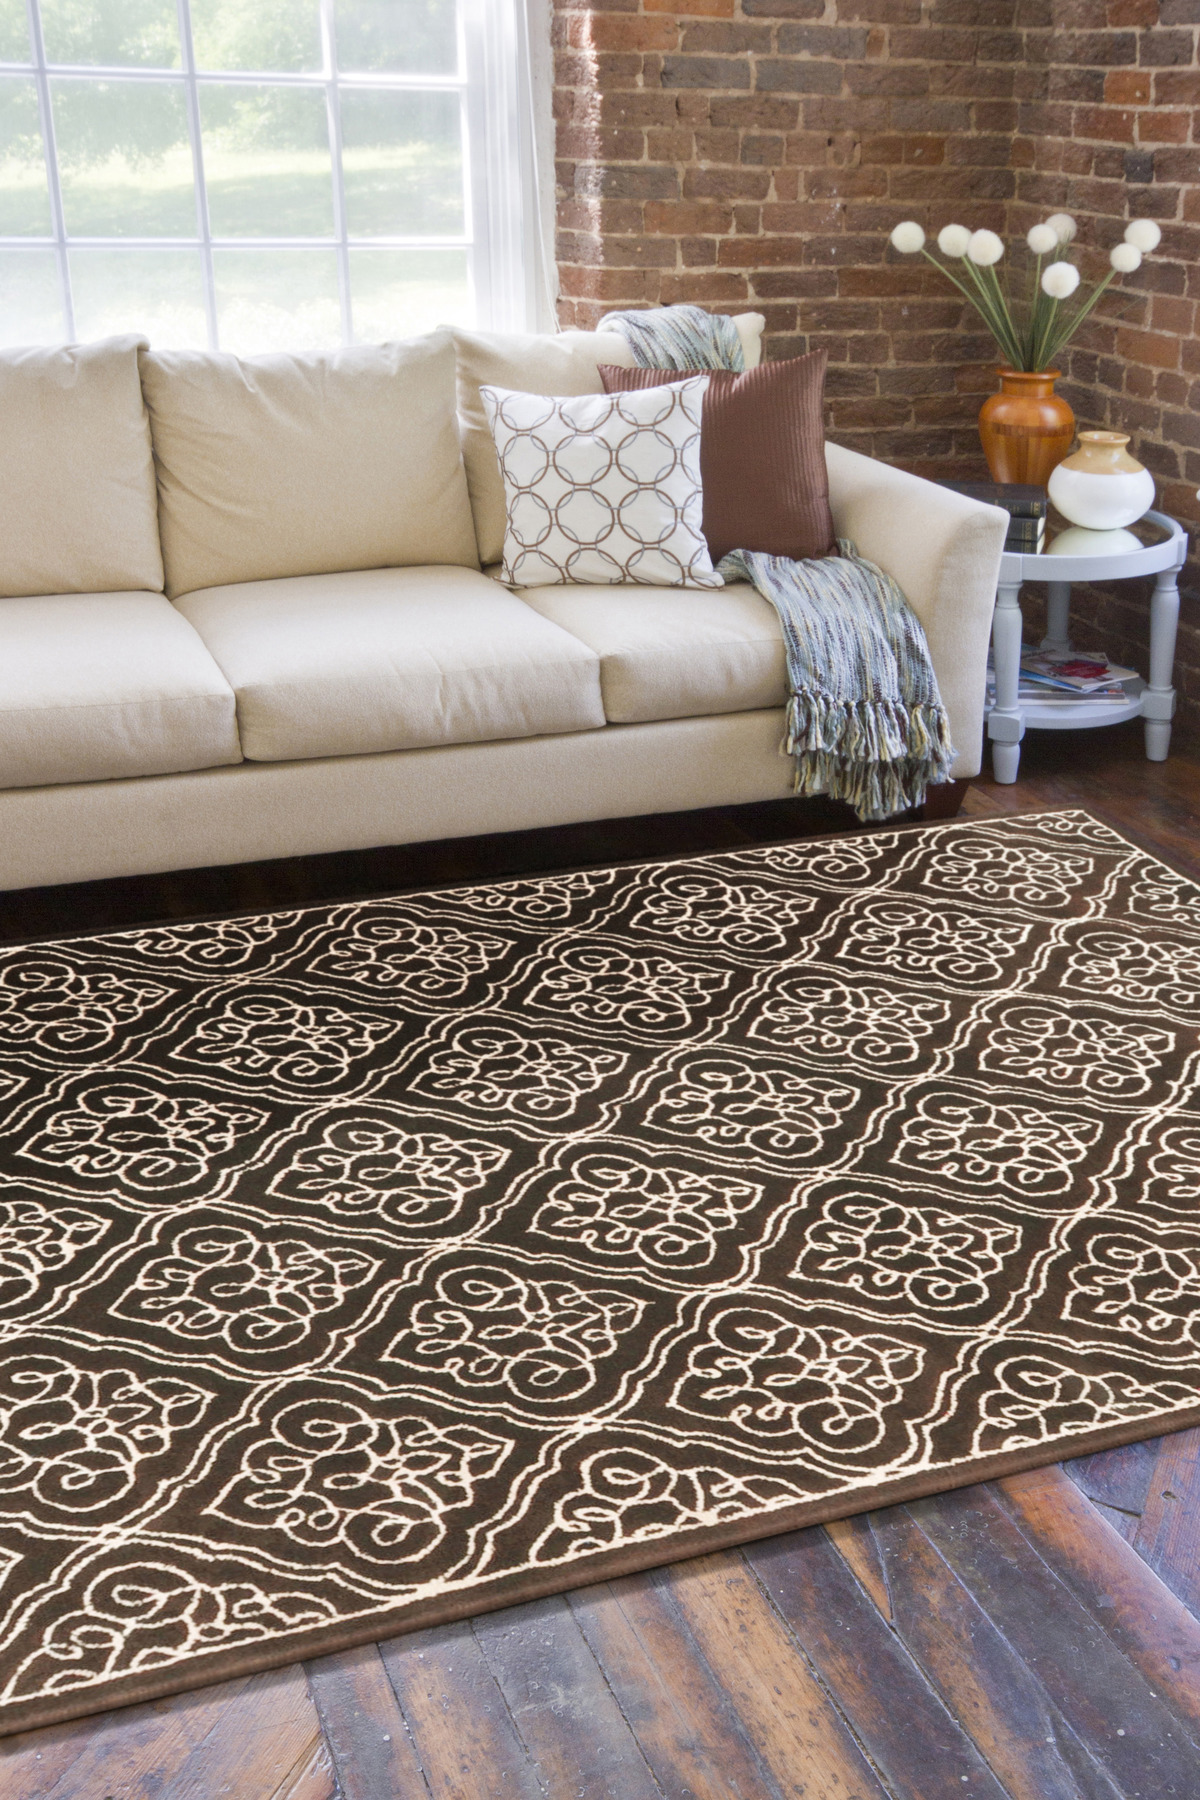 Inspiring Living Room Decor With Dark Brown Surya Rugs With Floral Pattern On Wooden Floor Plus White Sofa Ideas